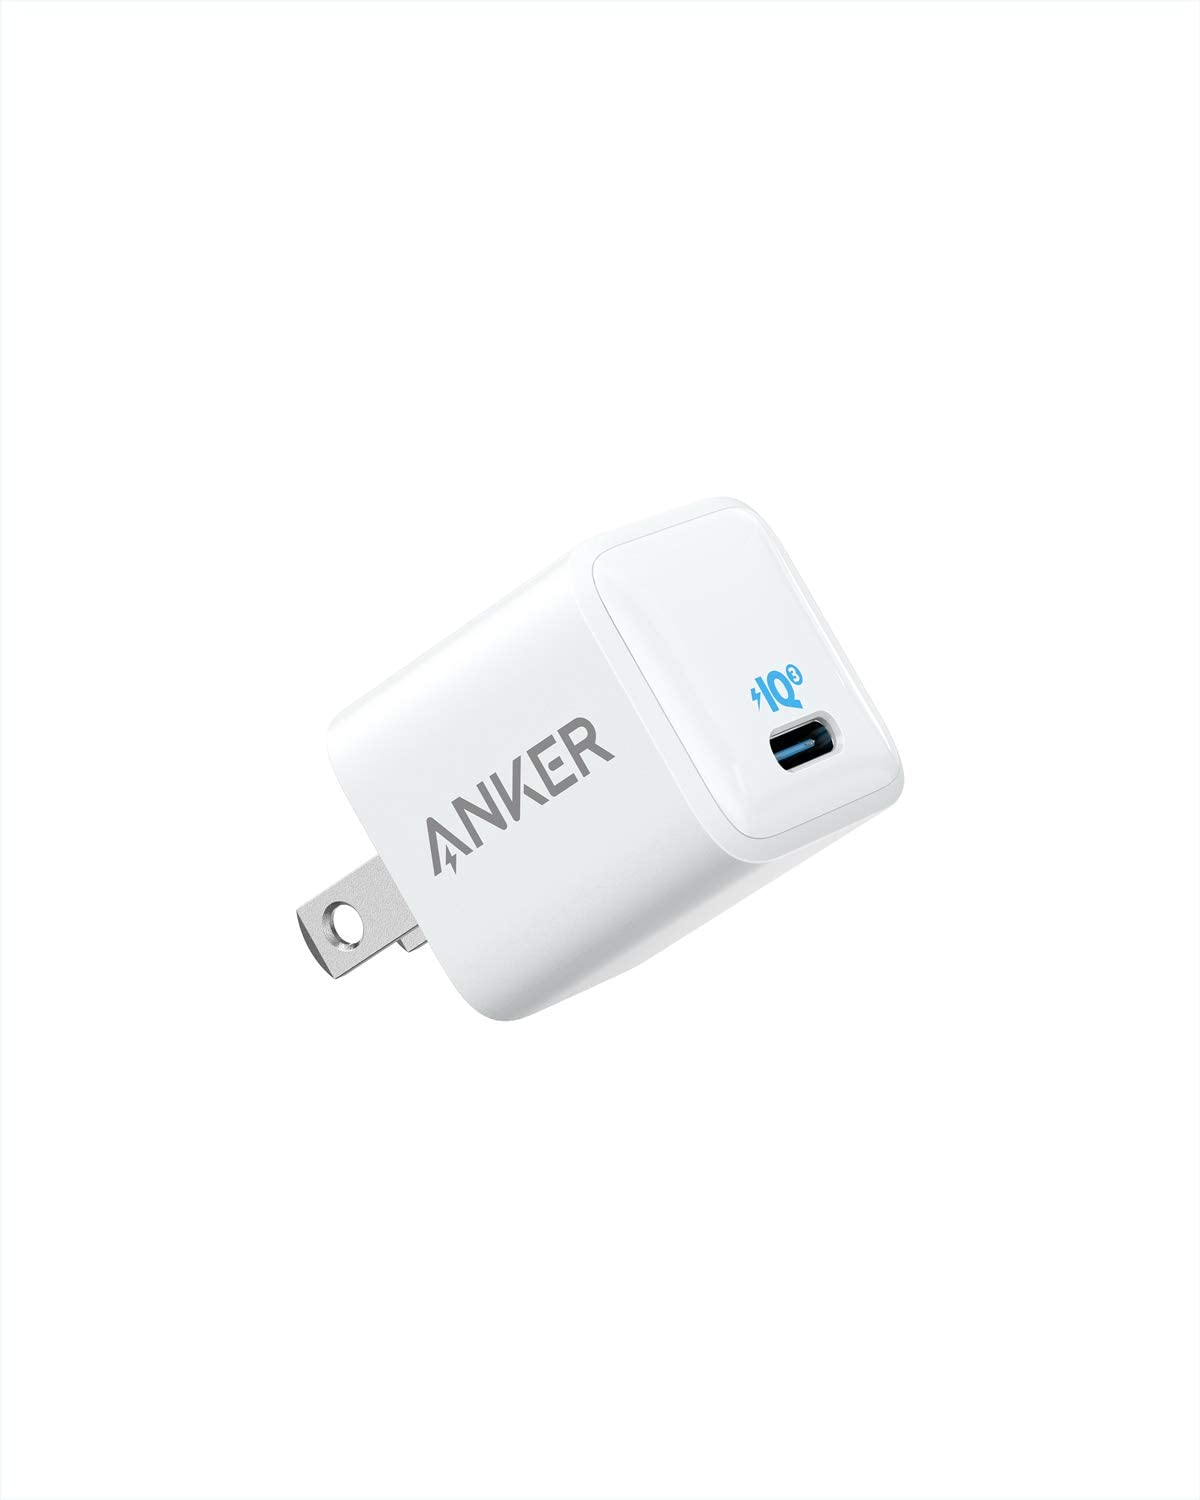 USB C Charger, Anker 18W PIQ 3.0 Compact Fast Charger Adapter, PowerPort III Nano USB C Wall